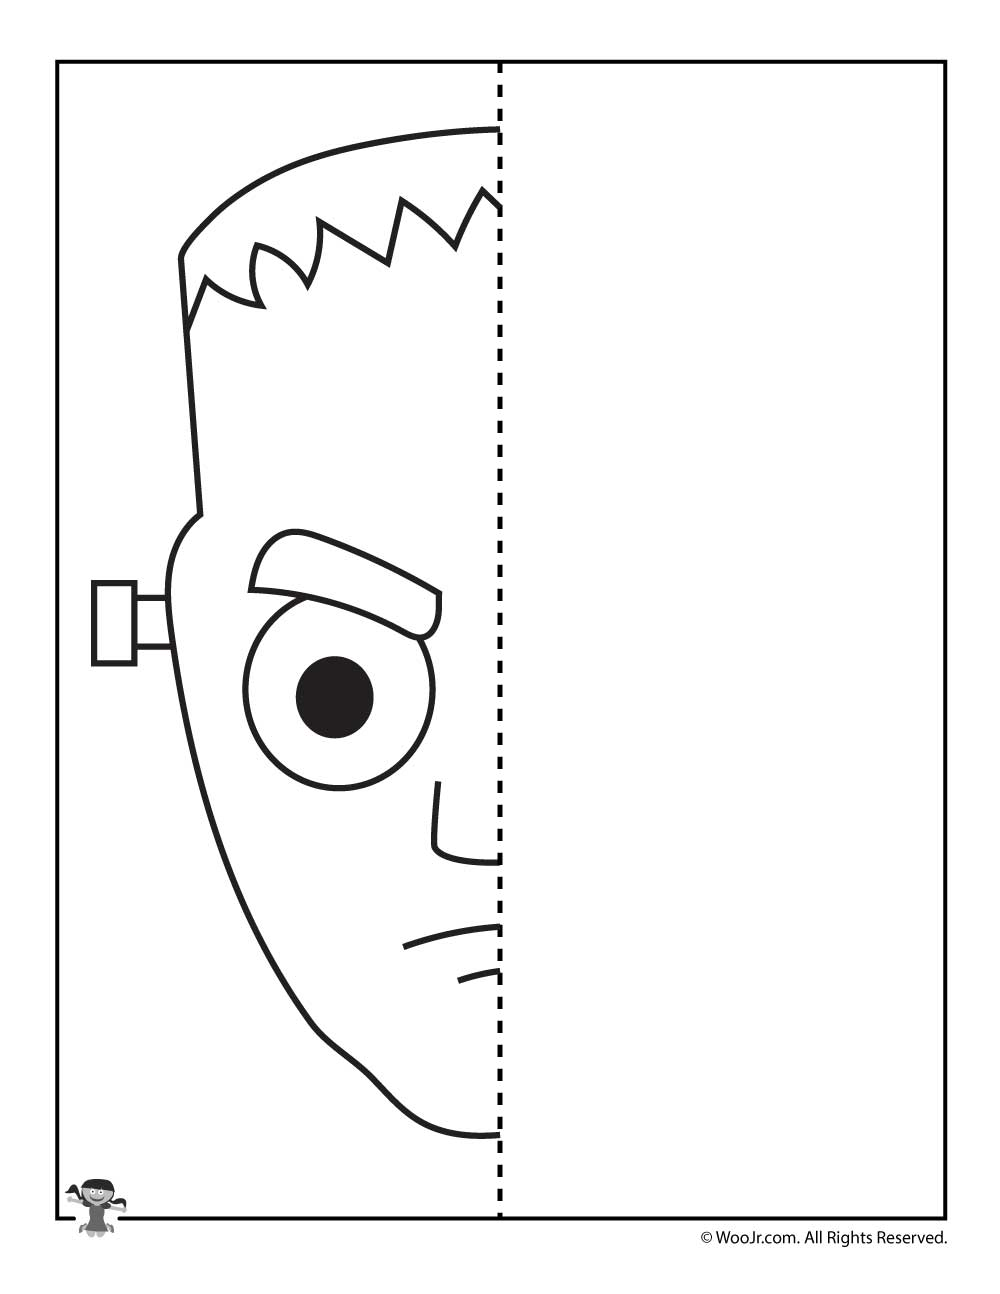 frankenstein halloween drawing activity - Drawing Activity Sheets